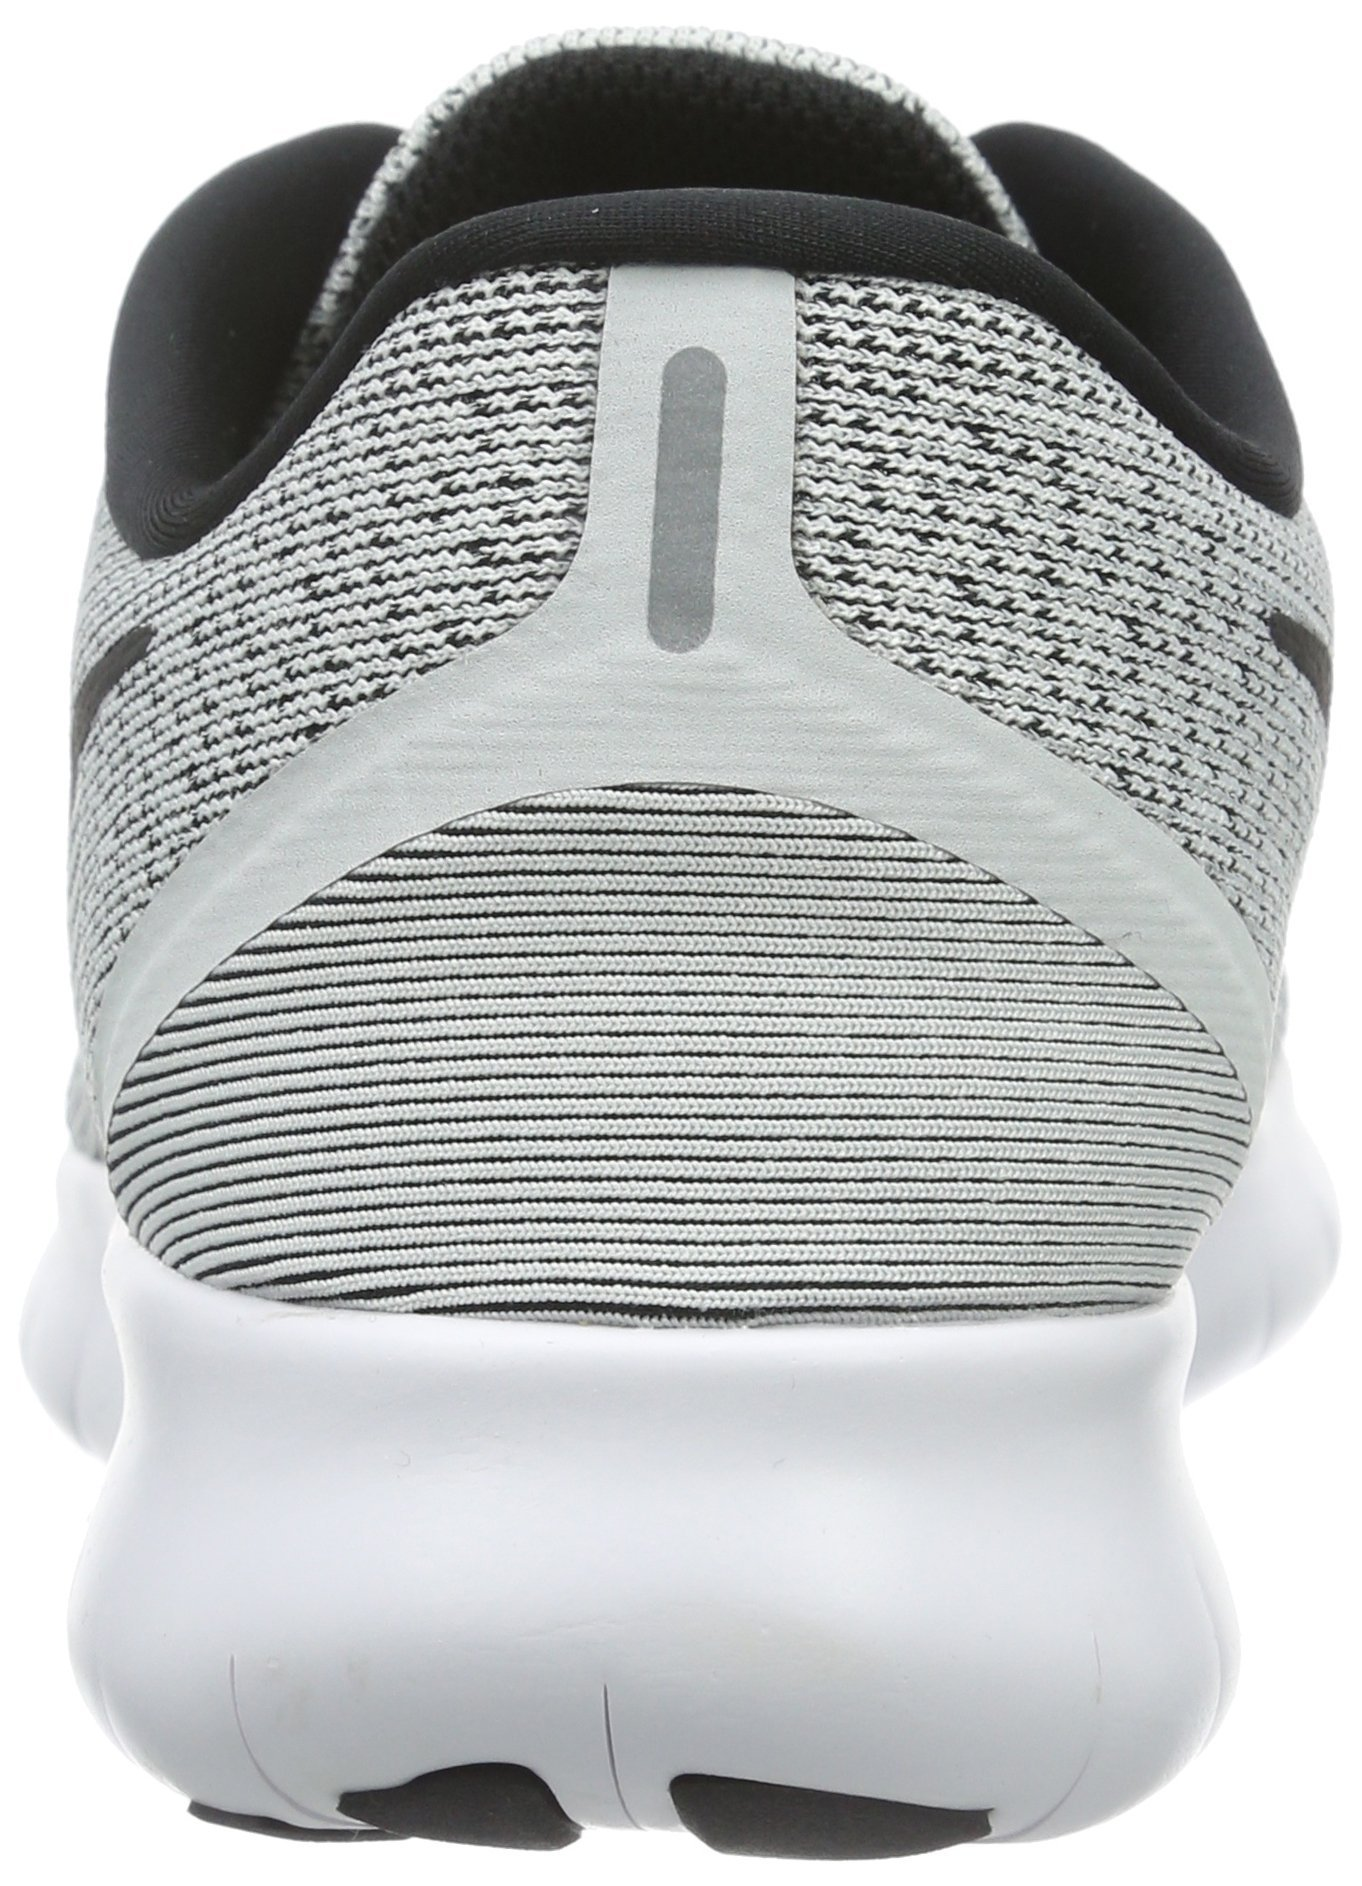 Nike Womens Free RN Running Shoe White/Black/Pure Platinum 6 by Nike (Image #2)